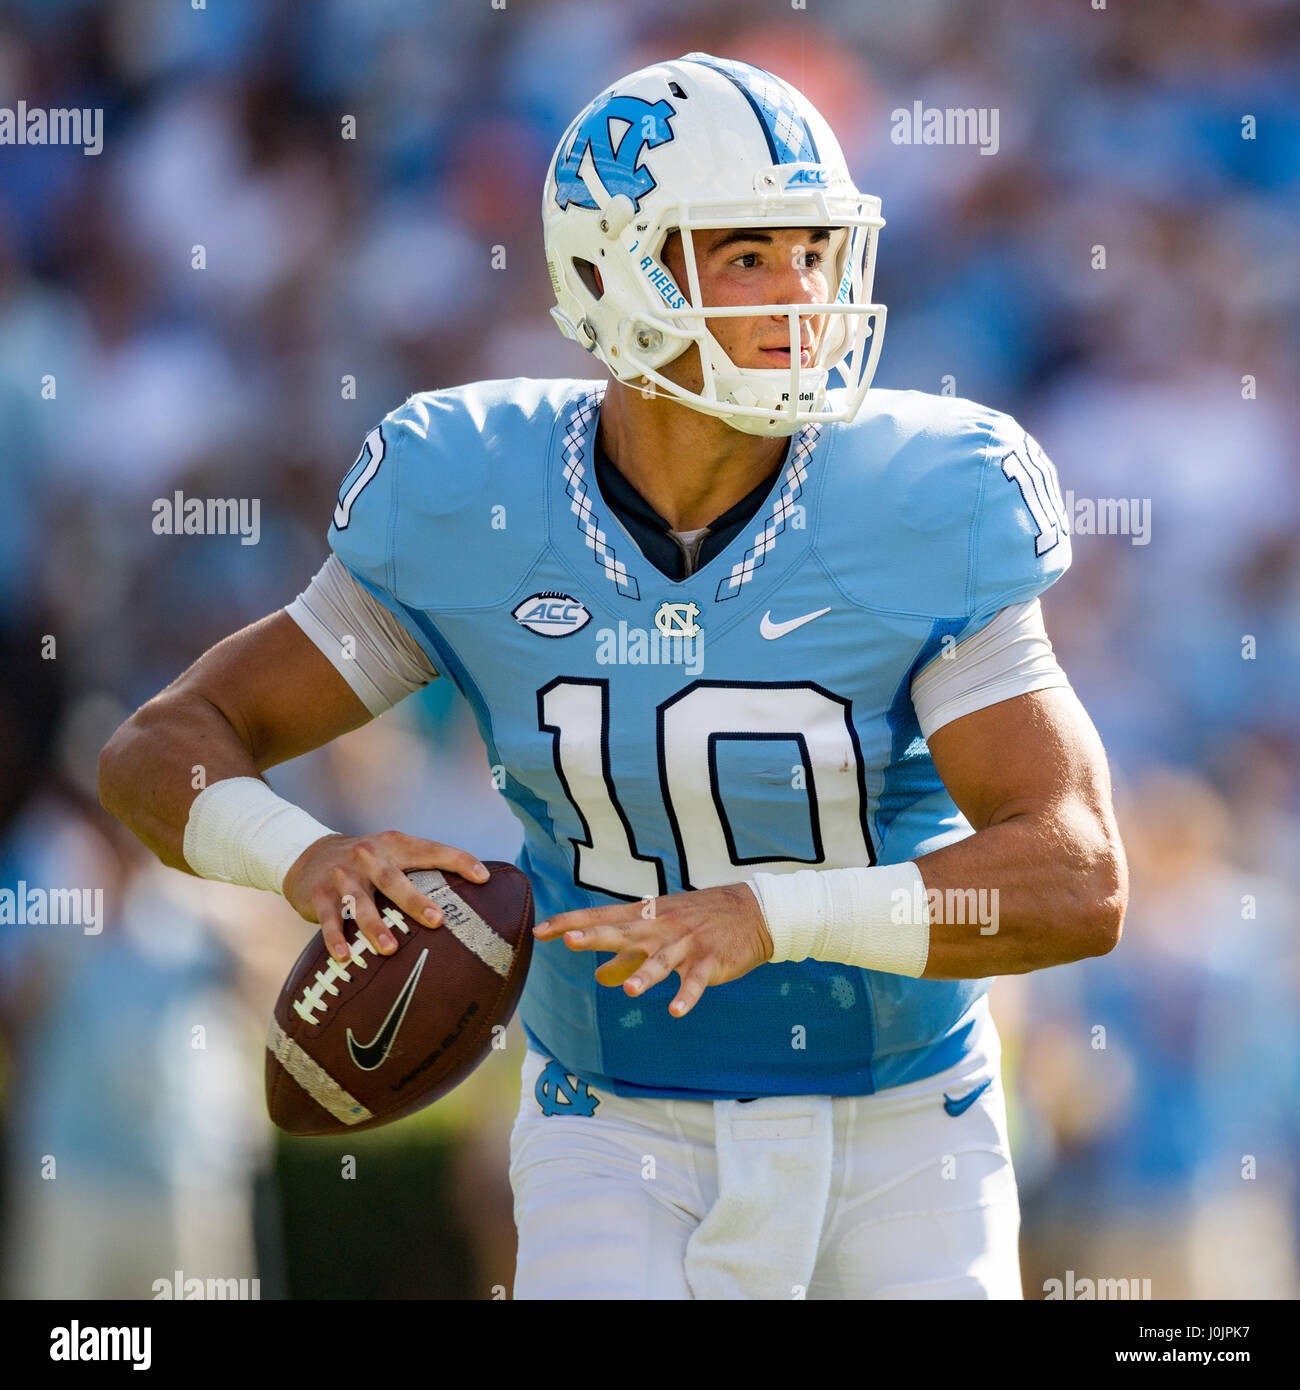 separation shoes a6faf 34a6e North Carolina quarterback Mitch Trubisky (10) during the ...